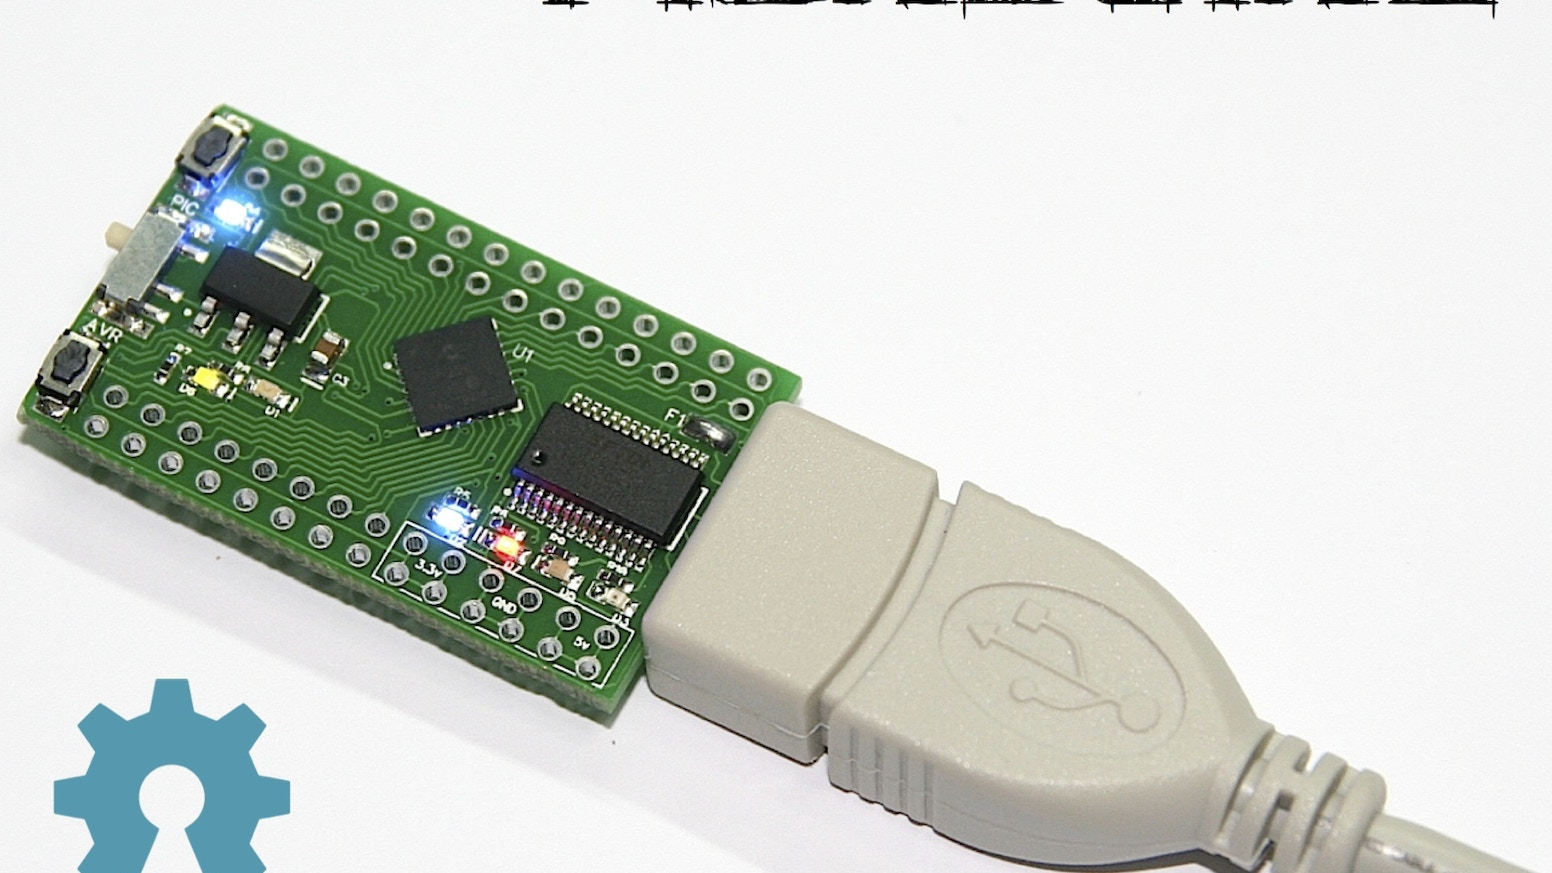 Picnduino Dual Microcontroller Development Platform By Stacy Usb Led Fader The Inexpensive Arduino And Amicus18 Compatible Direct To Board